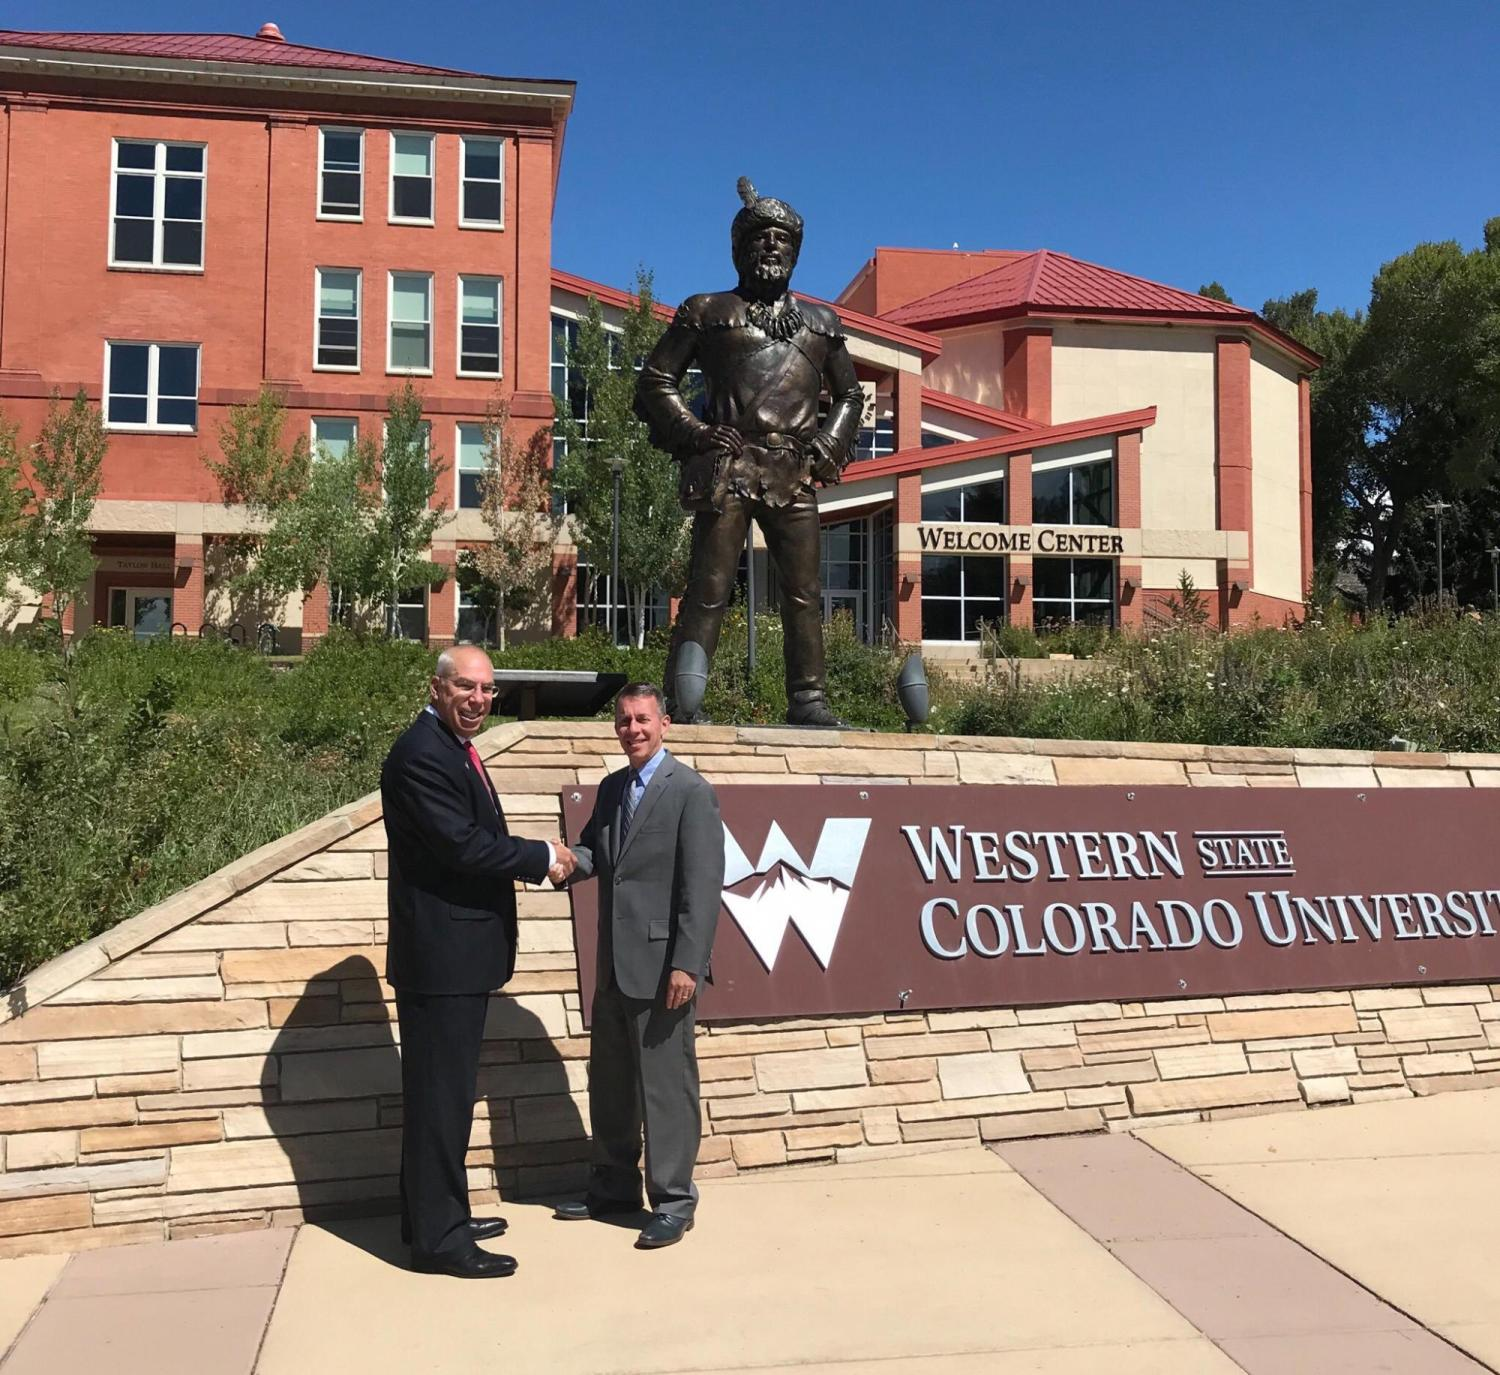 Western Colorado University President Greg Salsbury, left, and Dean Bobby Braun at WCU.